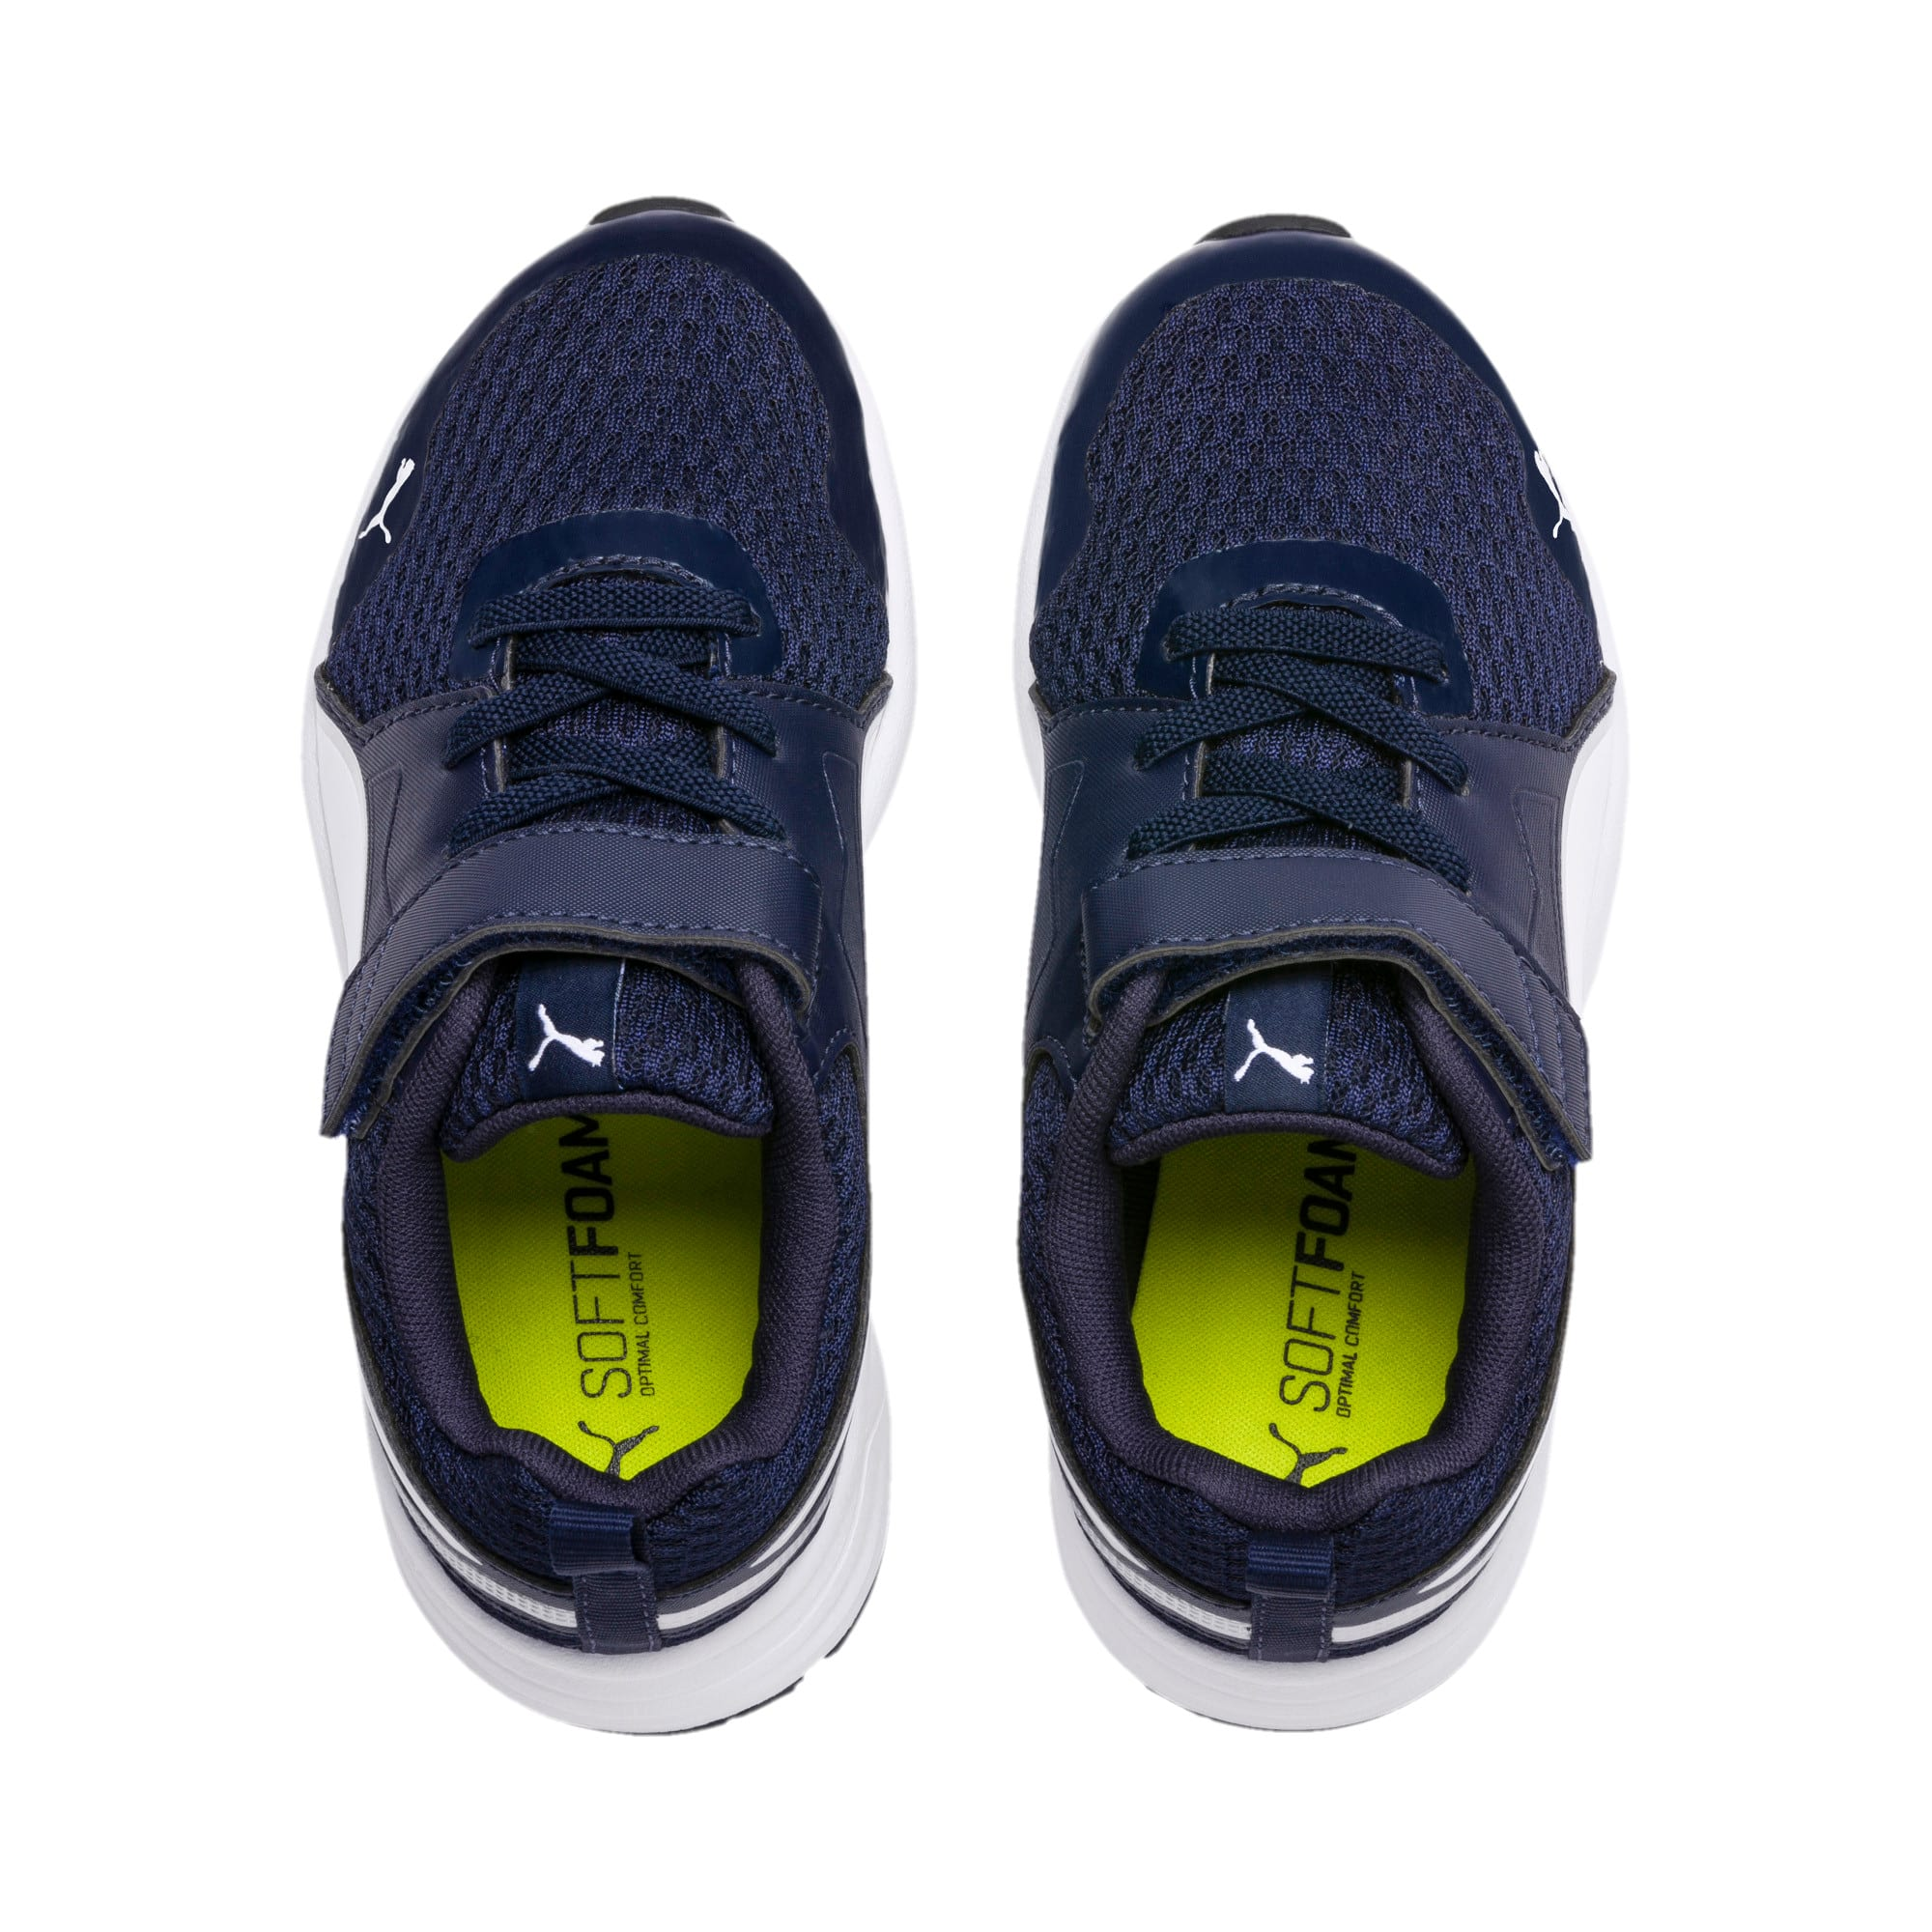 Thumbnail 4 of Pure Jogger V Kids' Trainers, Peacoat-Wht-Slvr-NYellow-Blk, medium-IND